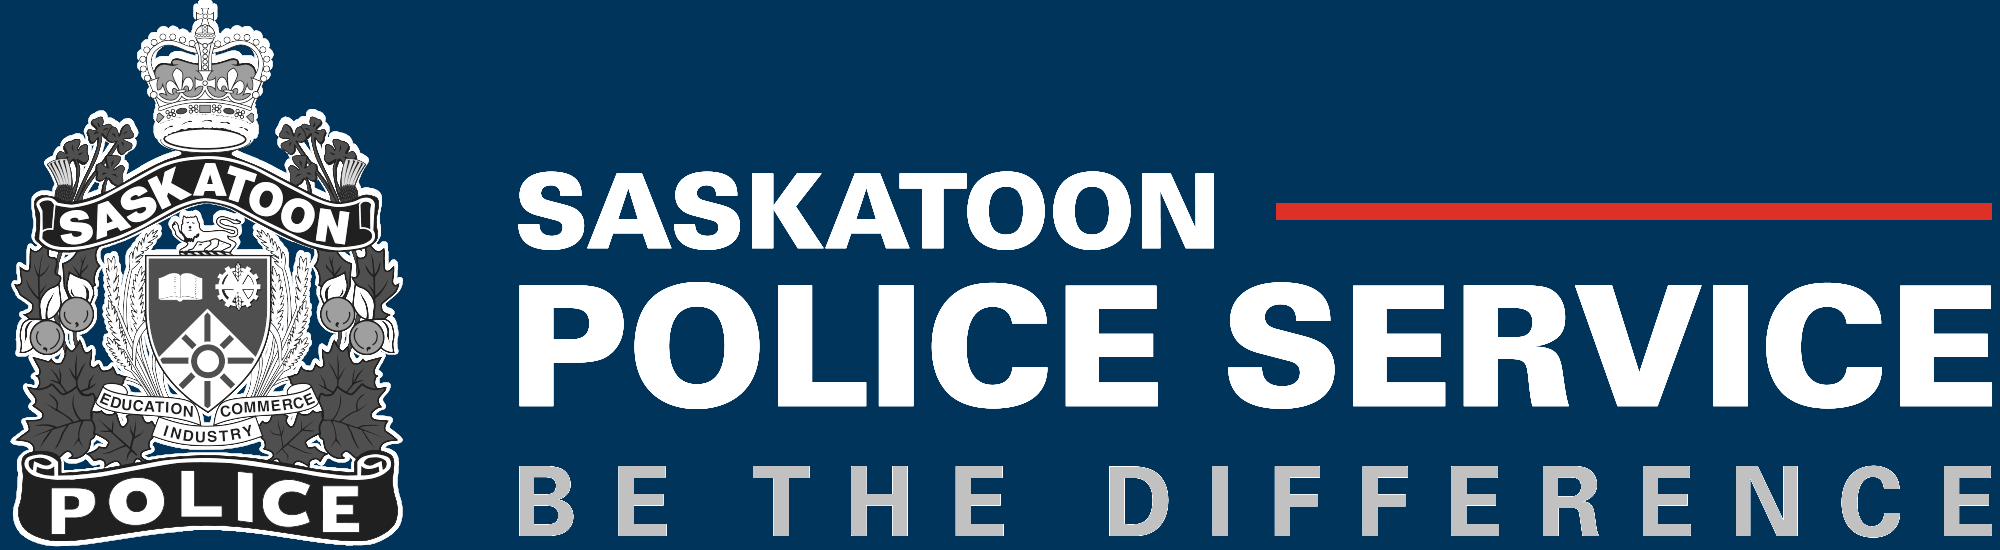 Saskatoon Police Service: Be the Difference.